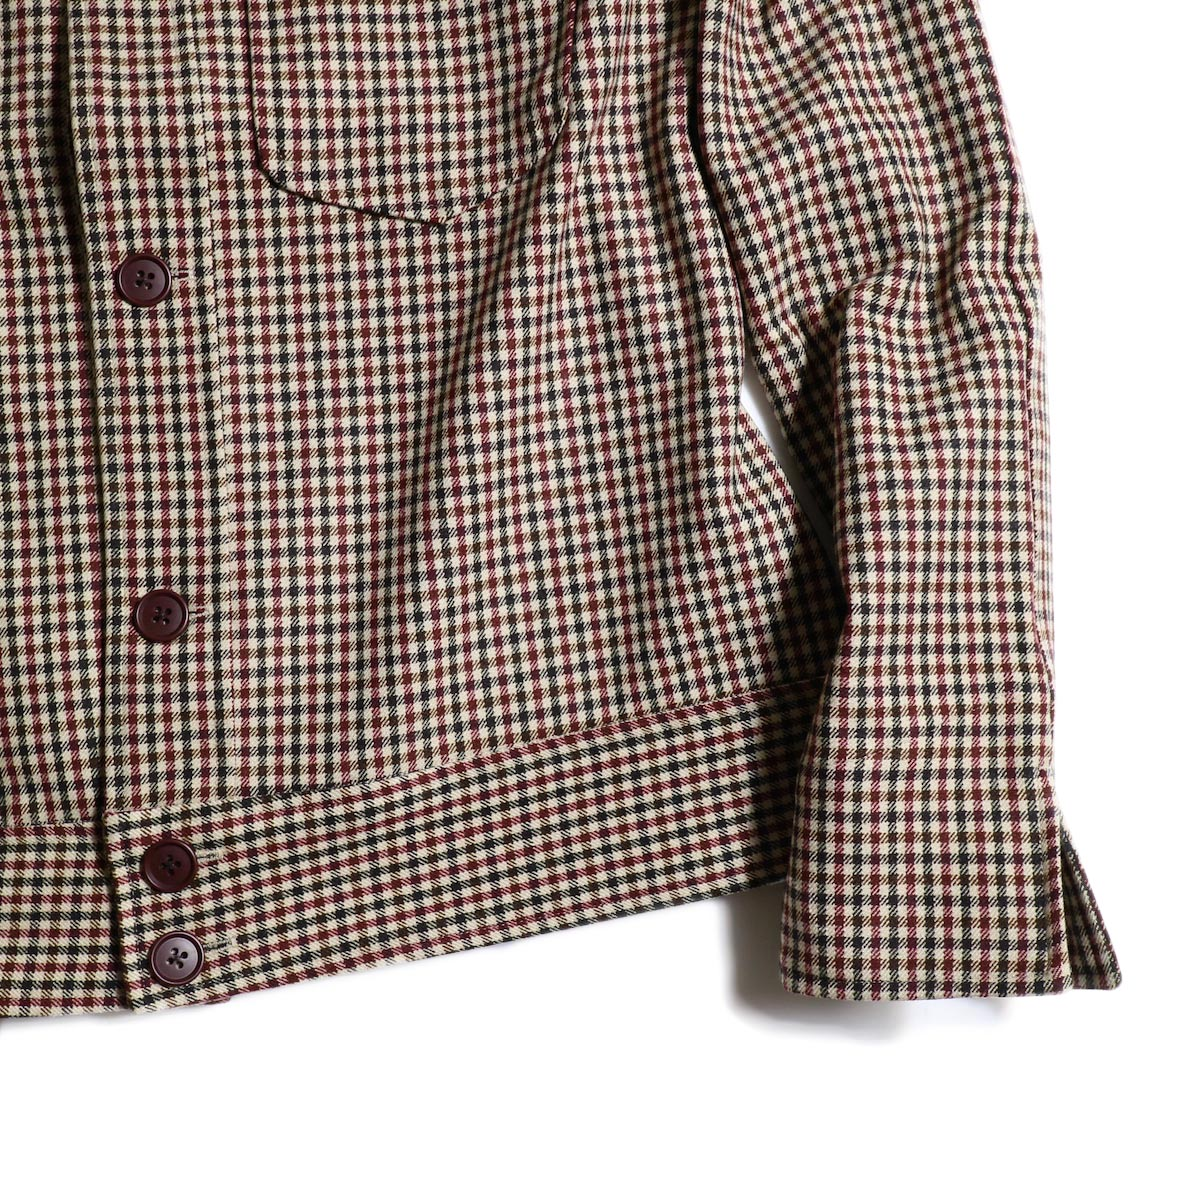 Needles / Cowboy Leisure Jacket -Gunclub Plaid (Bordeaux)袖、裾